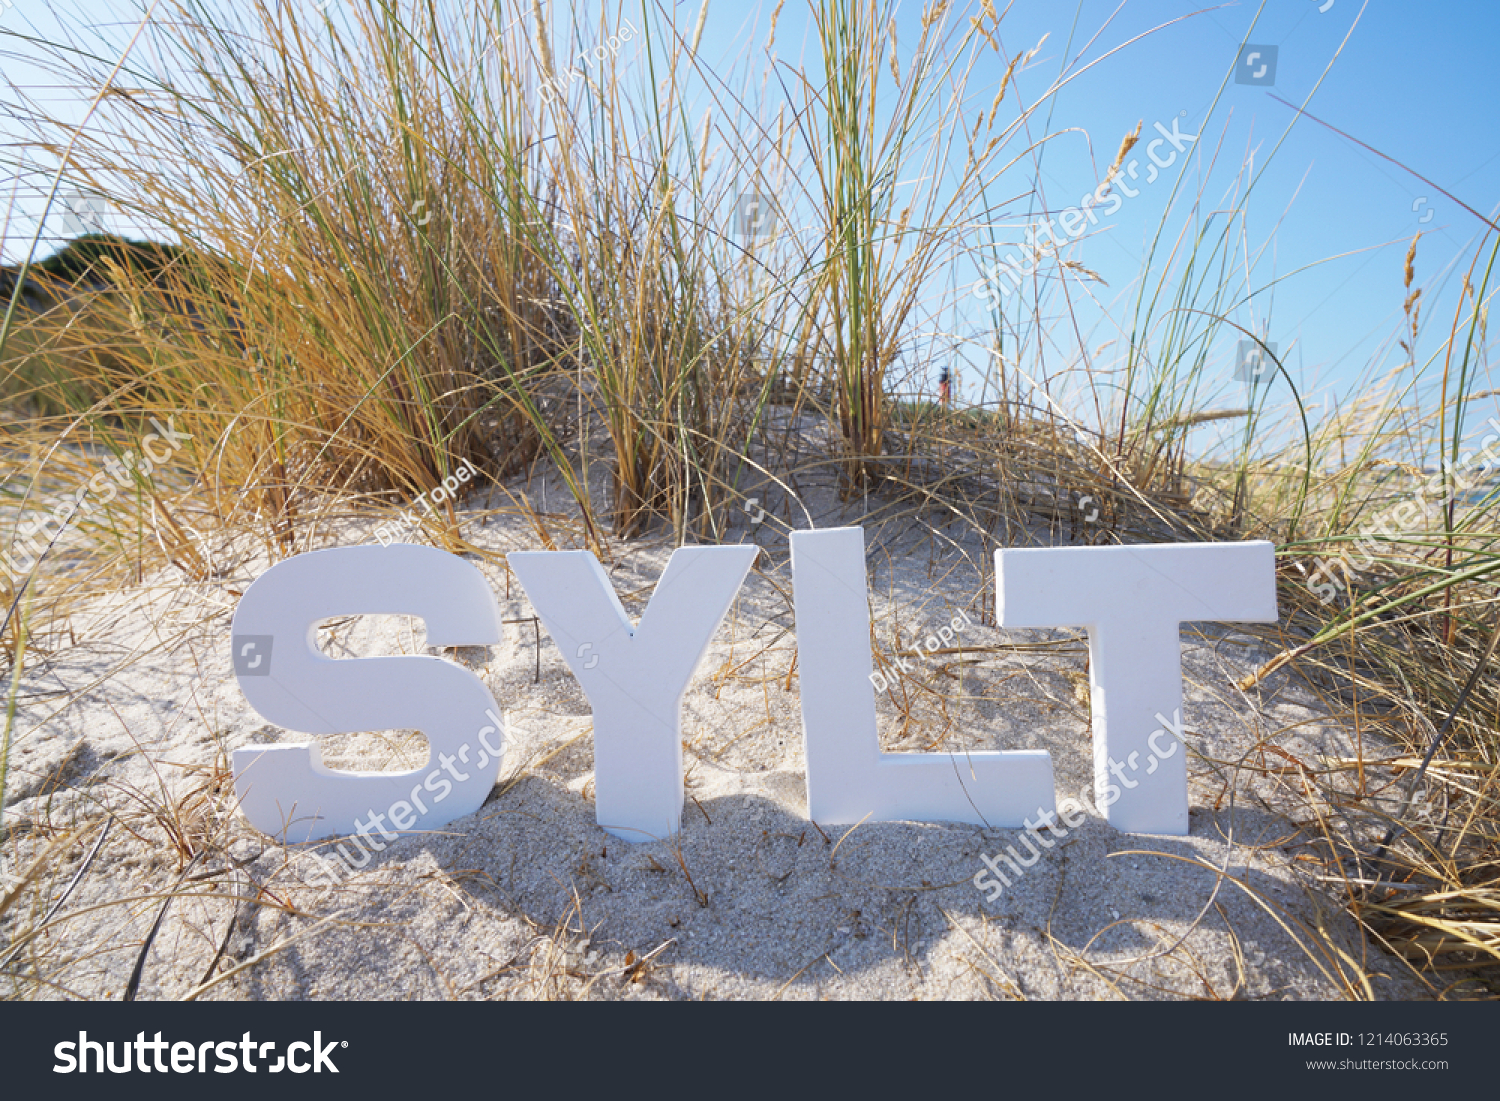 Sun Garden Sylt Photo Witk Sylt Letters Sand Dunes Stock Photo Edit Now